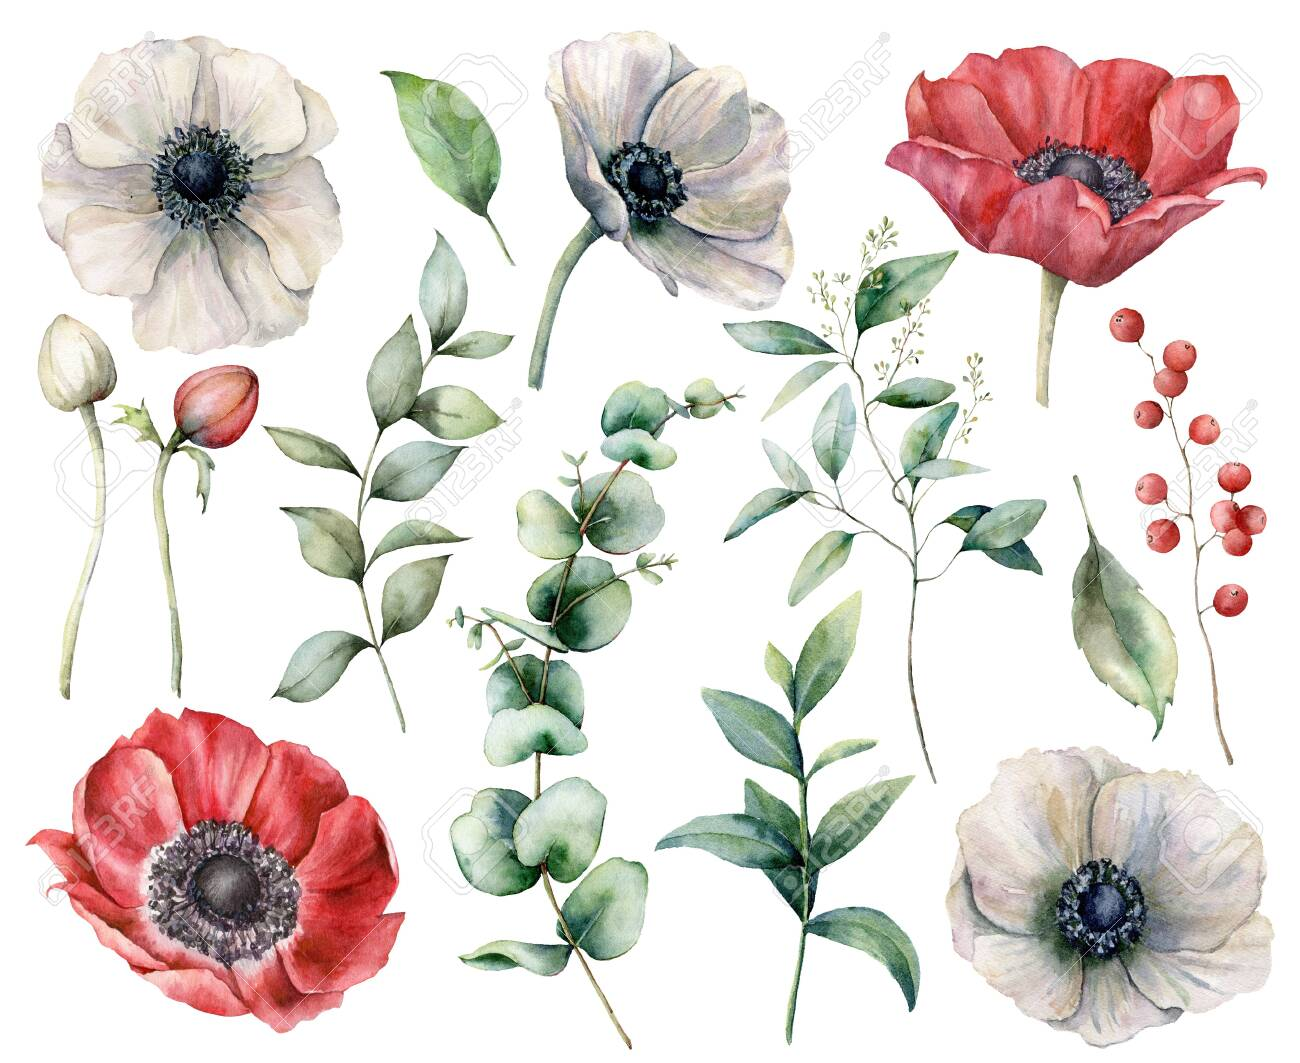 Watercolor floral set with red and white anemones. Hand painted flowers, buds, berries and eucalyptus leaves isolated on white background. Spring illustration for design, print, fabric or background. - 147764450